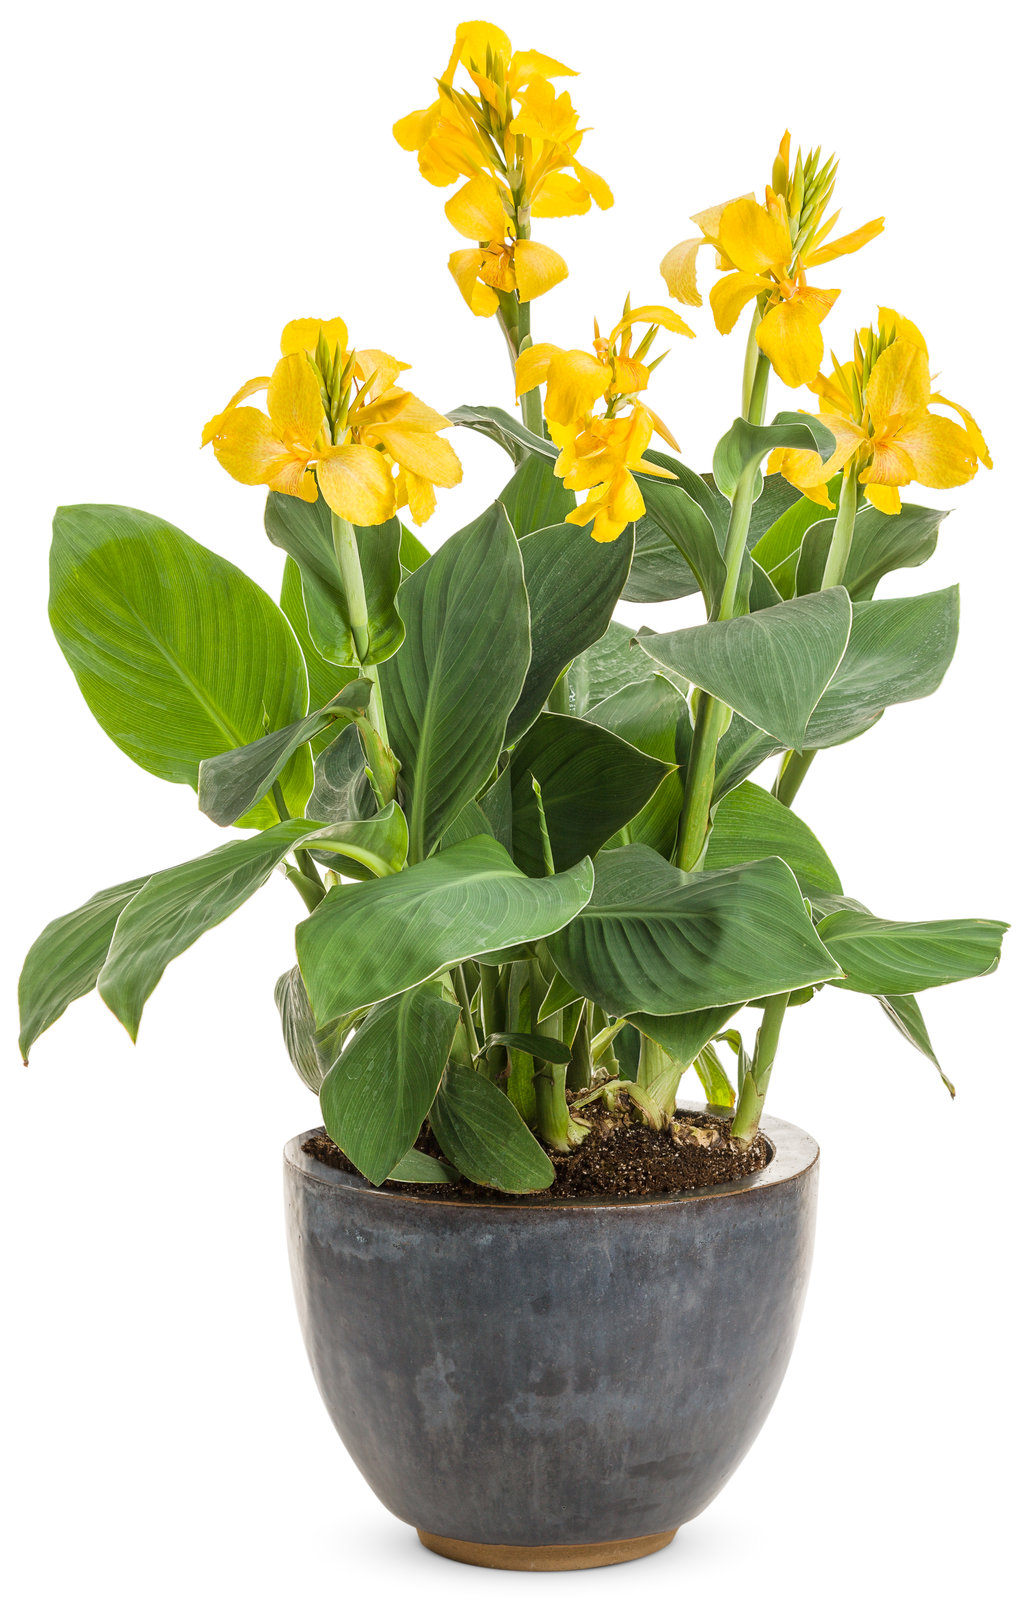 Toucan Yellow Canna Lily Canna Generalis Proven Winners